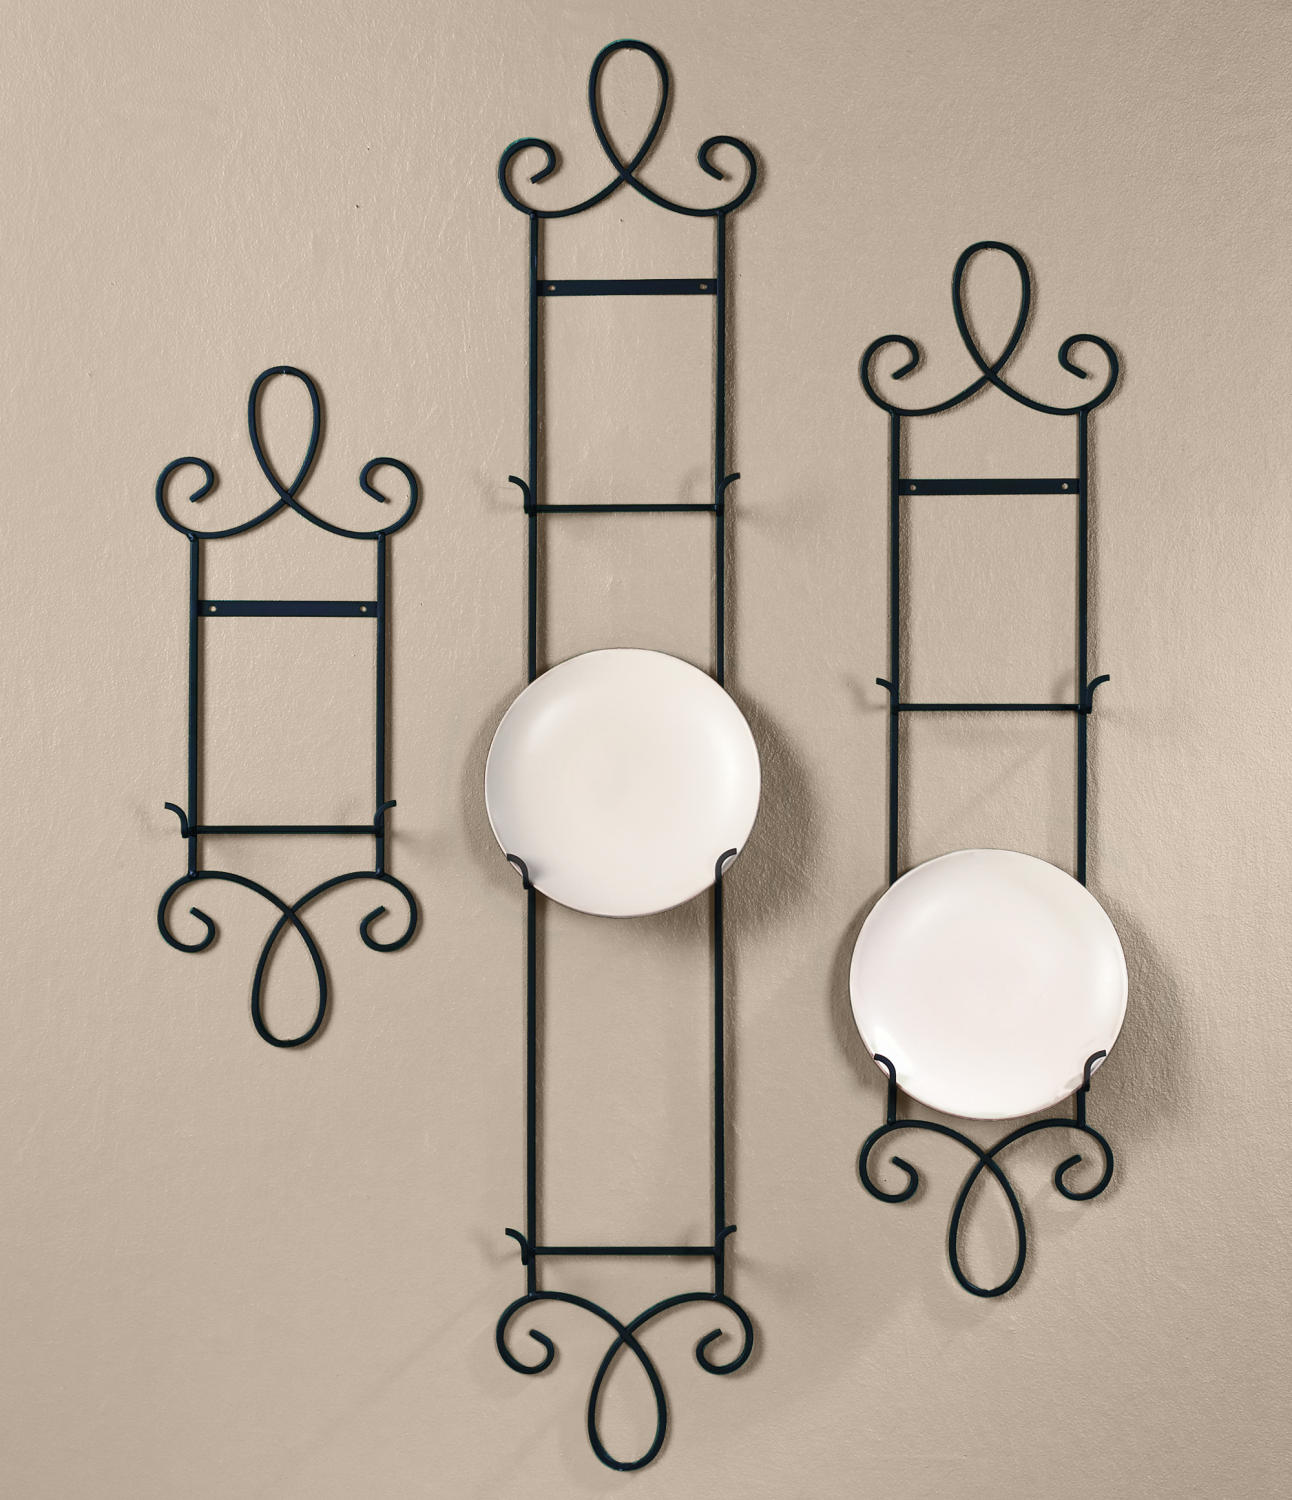 Decorative Metal Plates For Wall | Migrant Resource Network